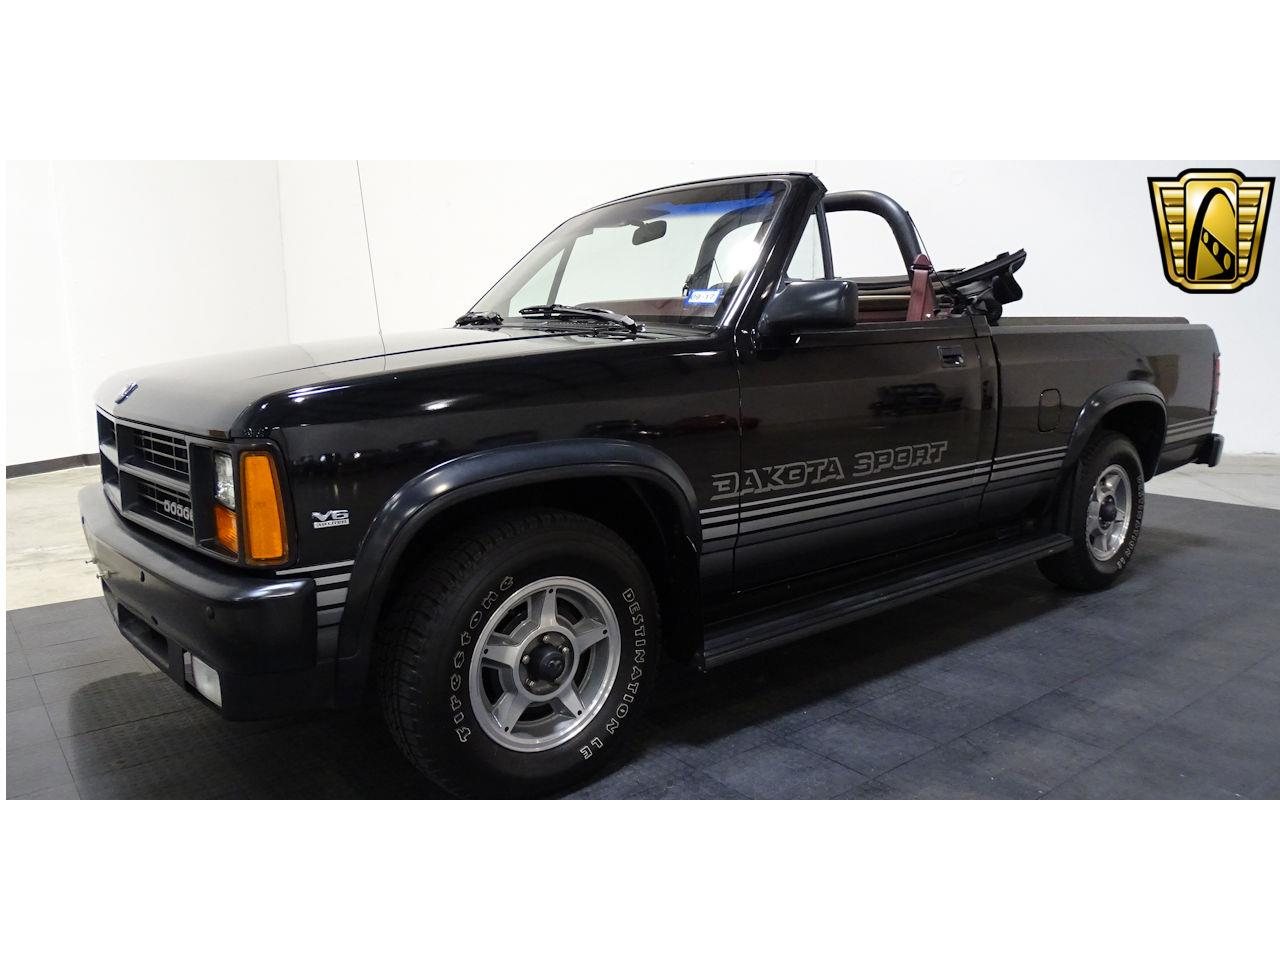 Large Picture of '89 Dodge Dakota located in Texas Offered by Gateway Classic Cars - Houston - L1SP